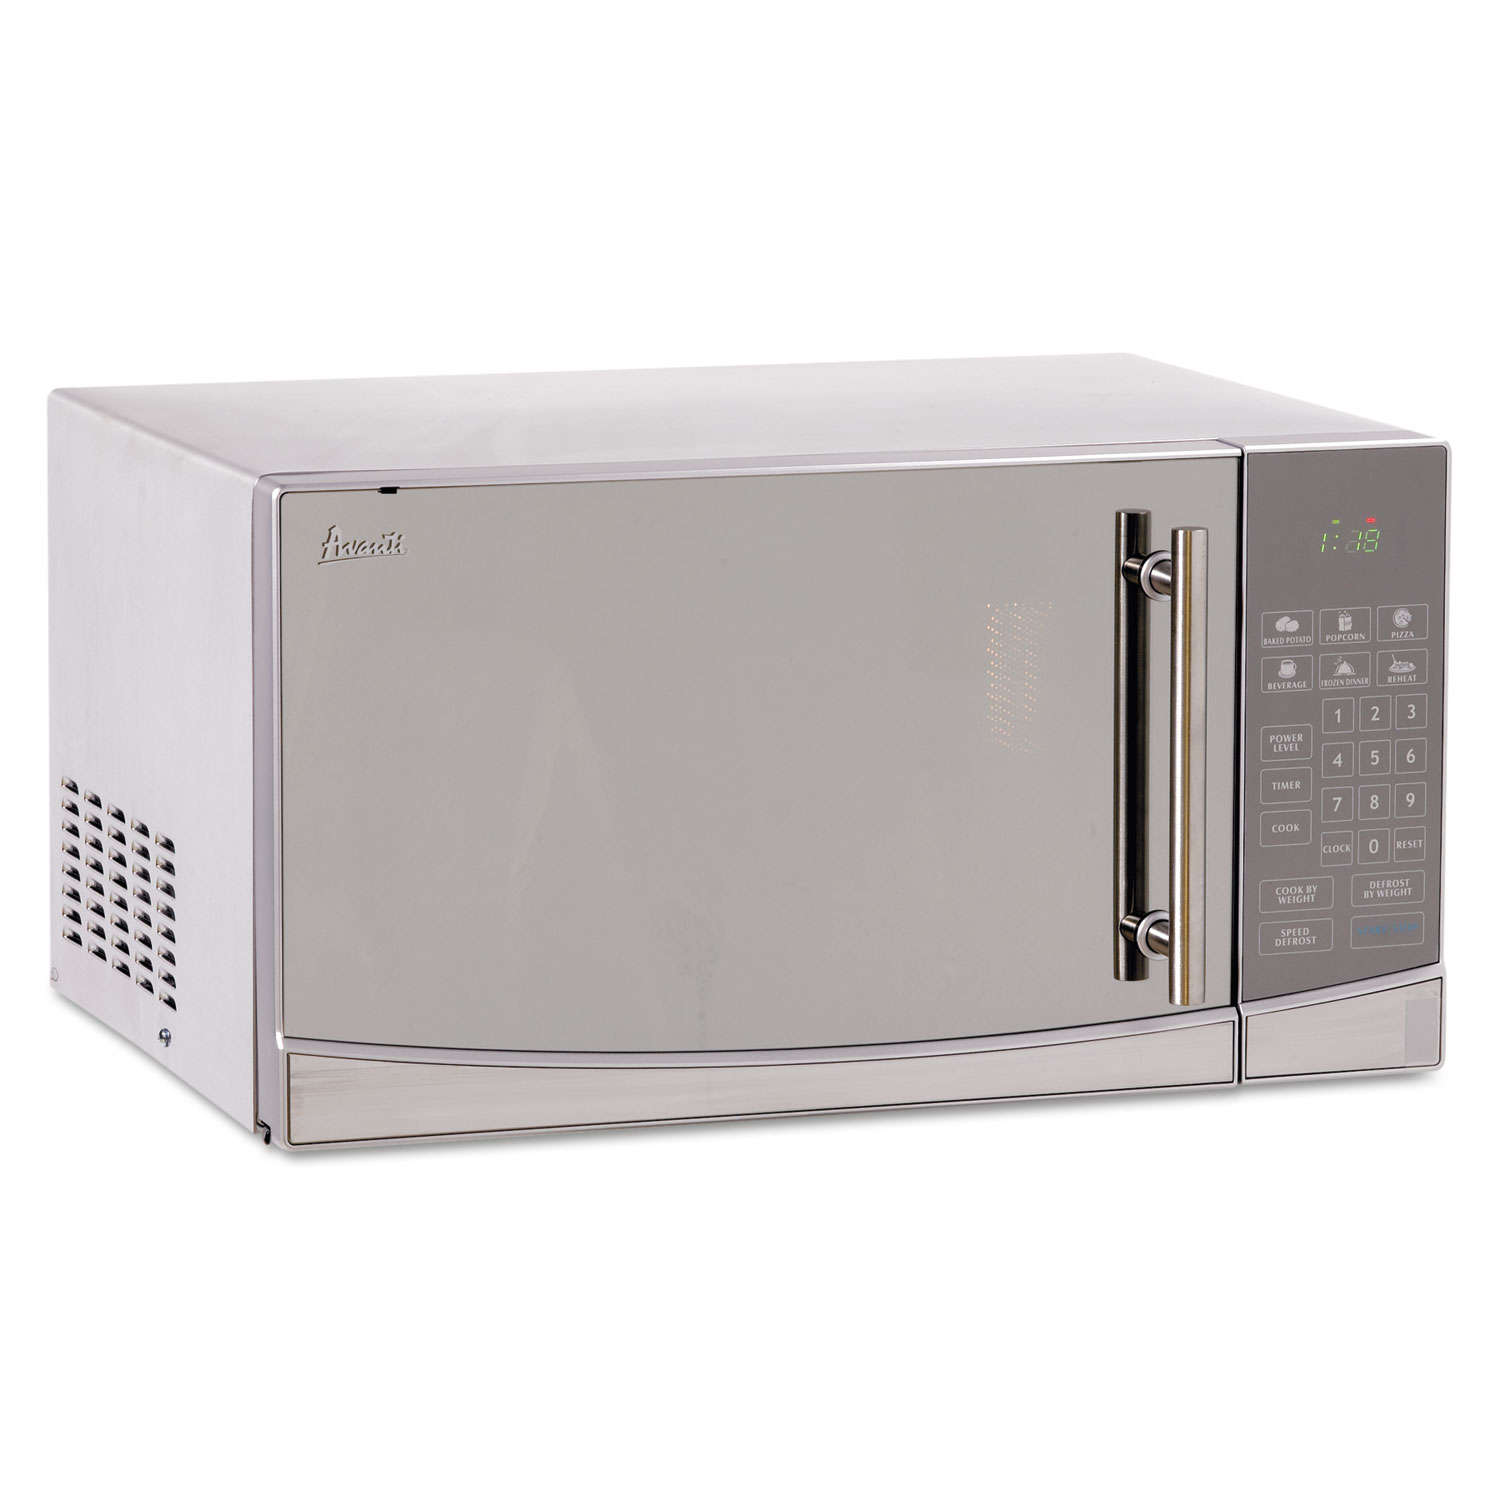 Avanti MO1108SST 1,000-Watt Counter Top Microwave Oven With Stainless Steel Finish by Avanti Products